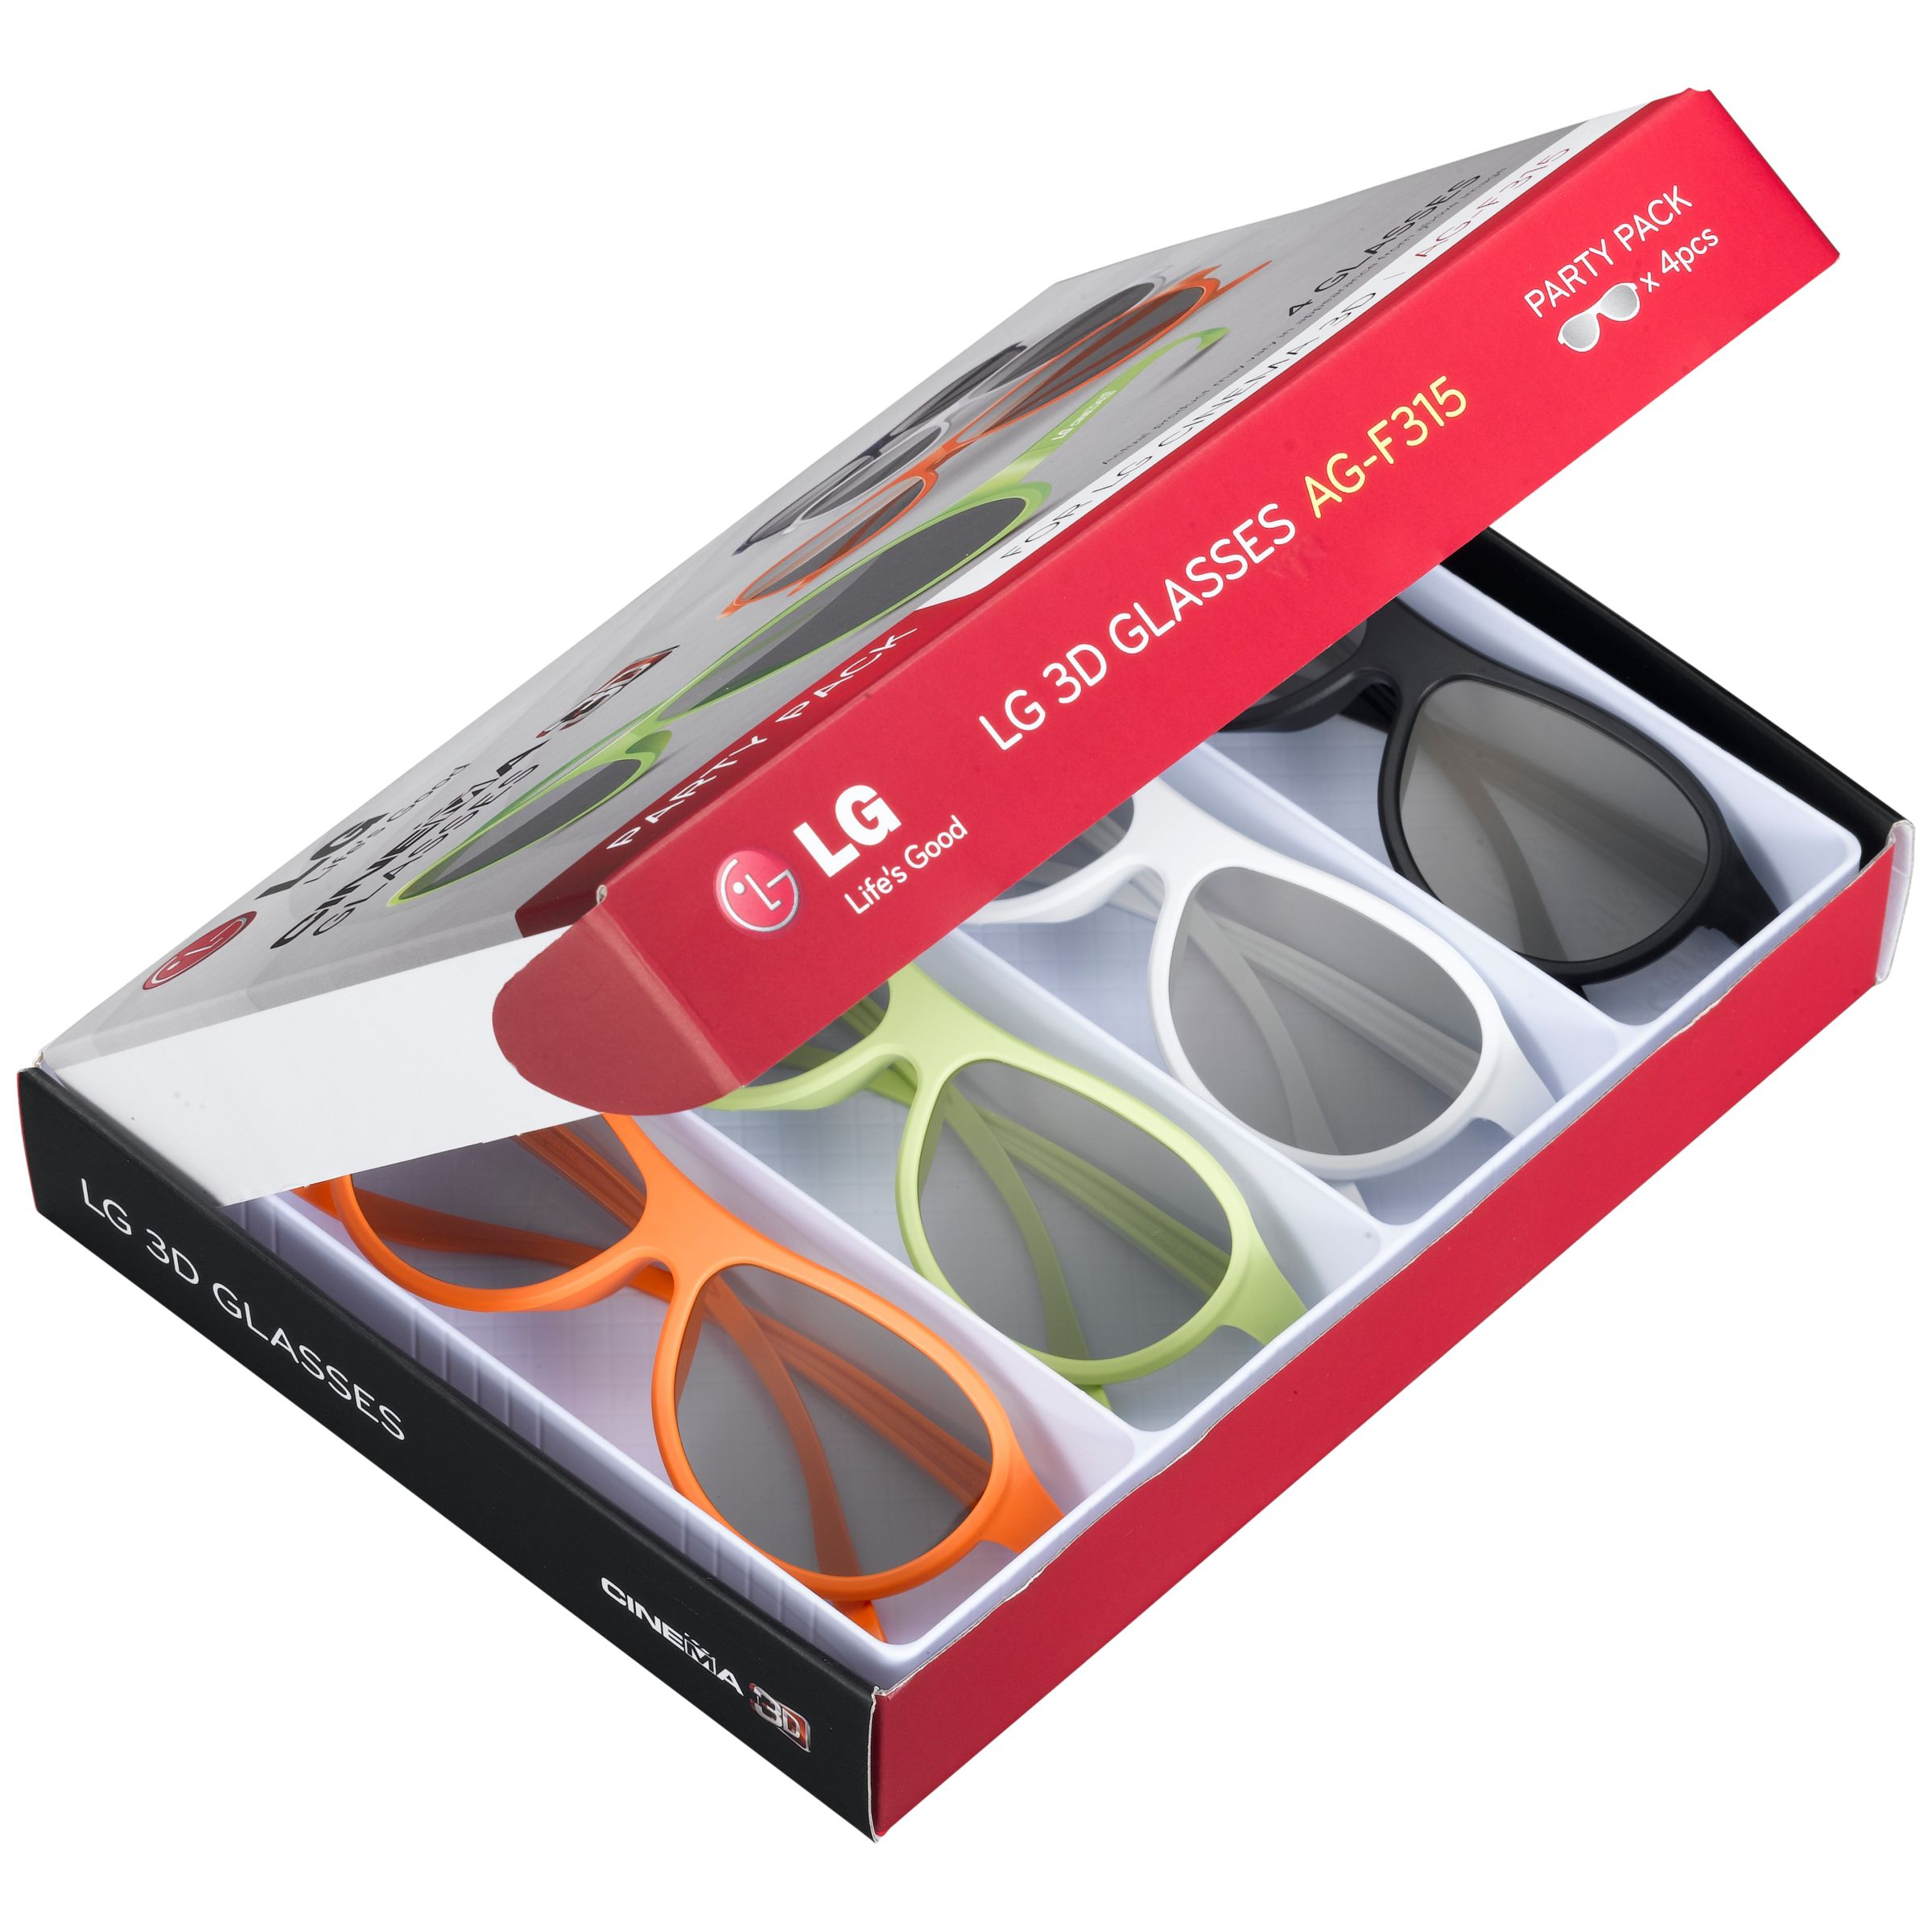 LG AG F315 3D Glasses Four Pairs